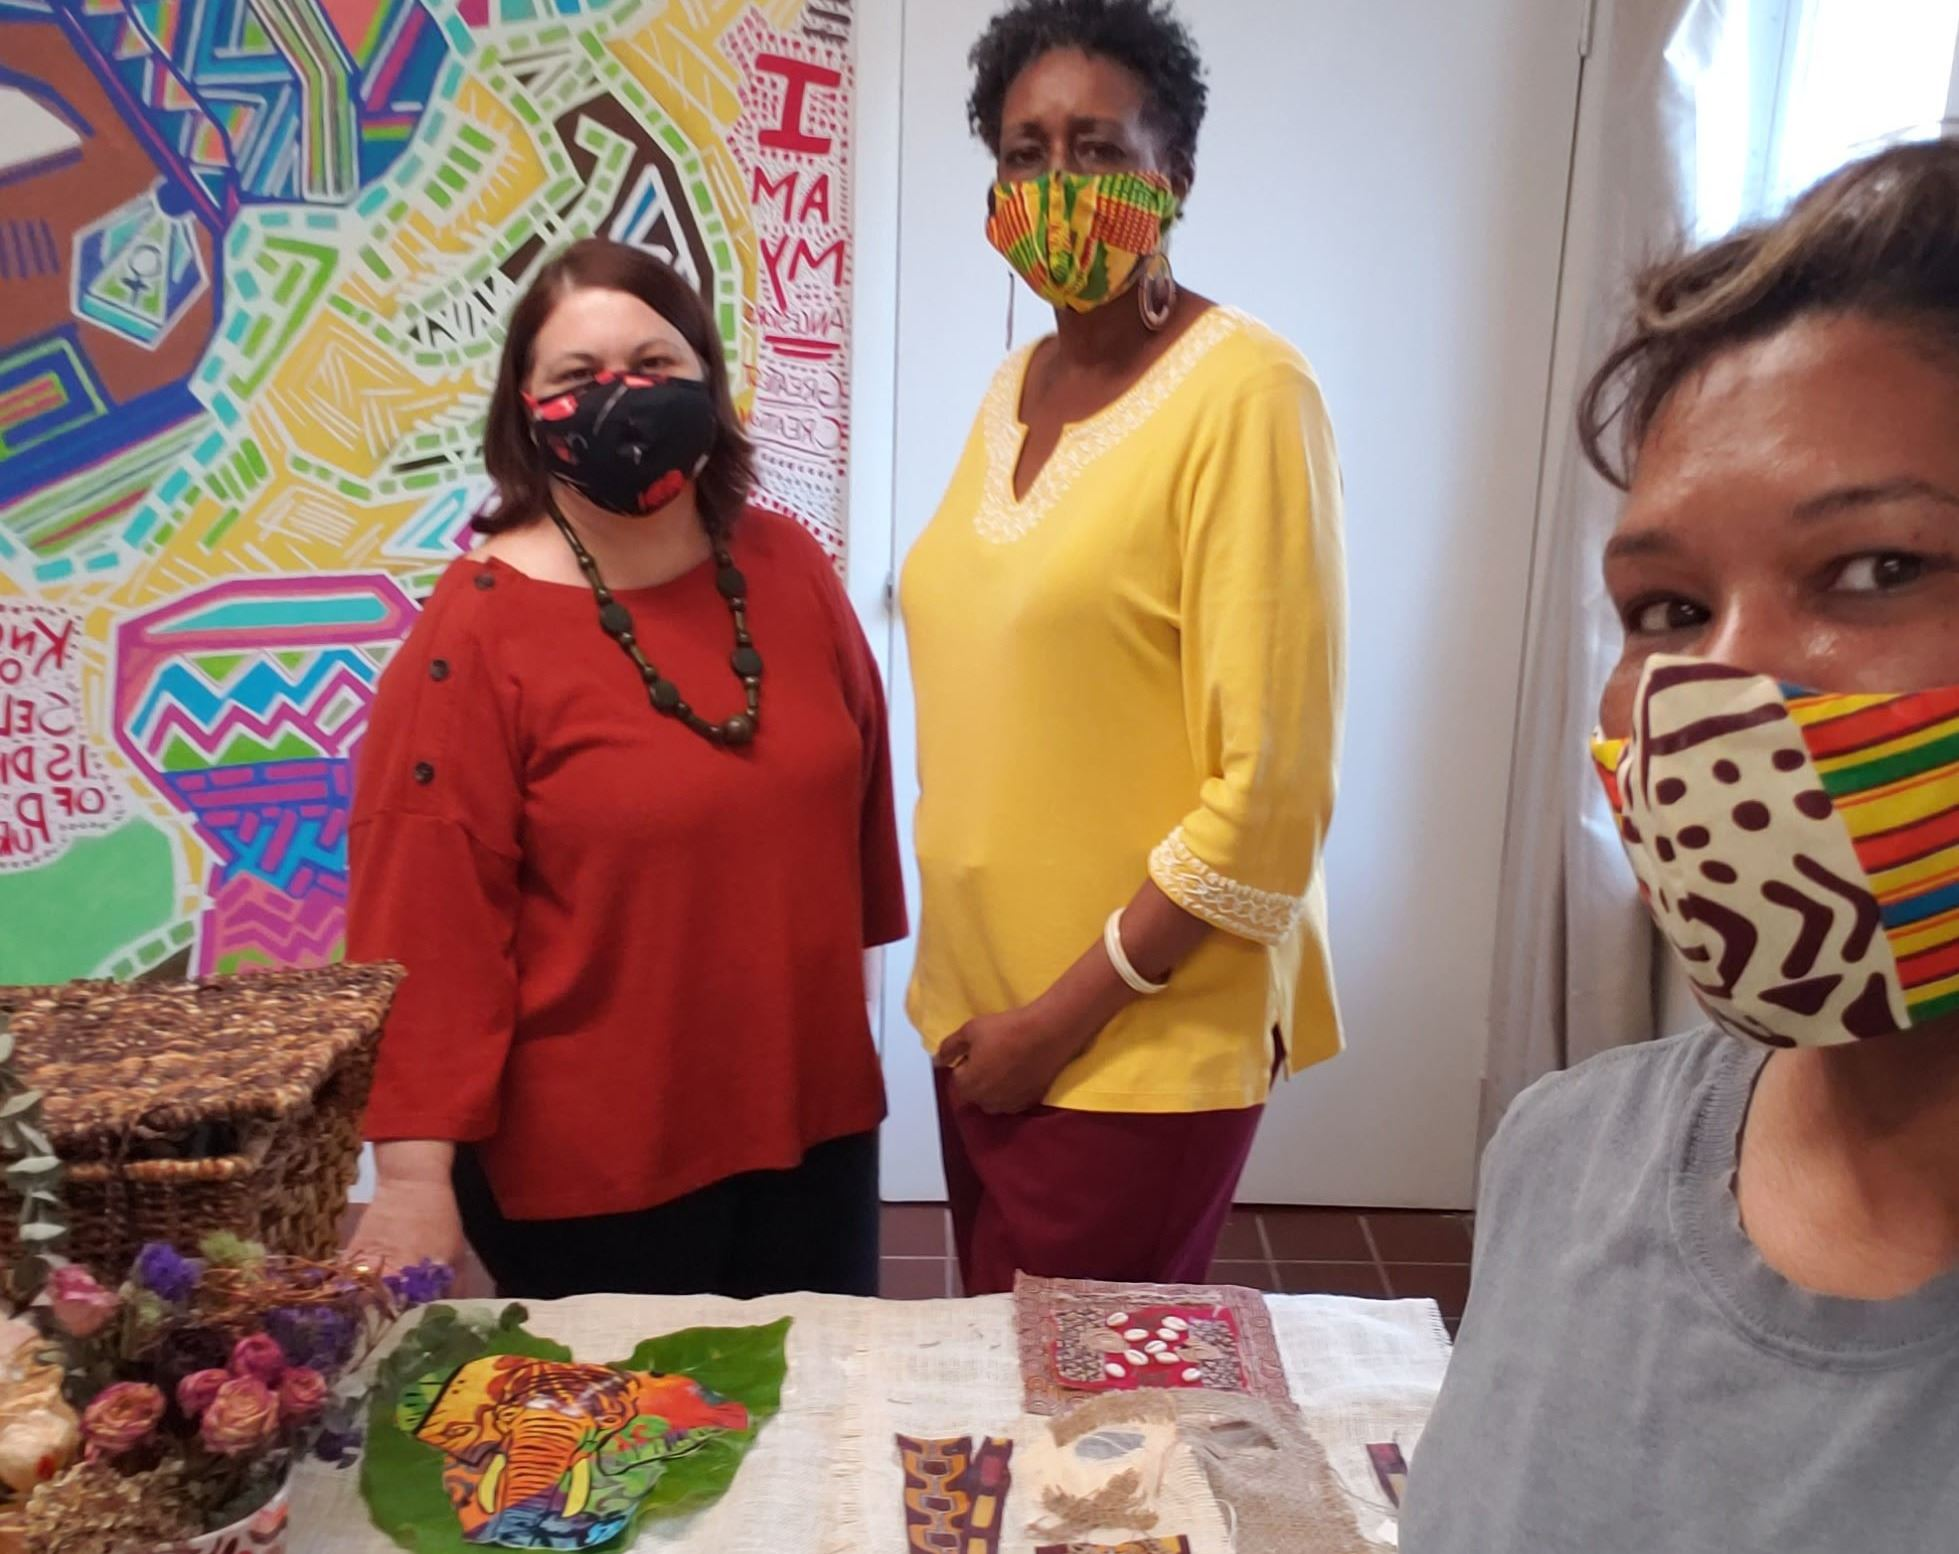 Three Women in Masks with Art Project